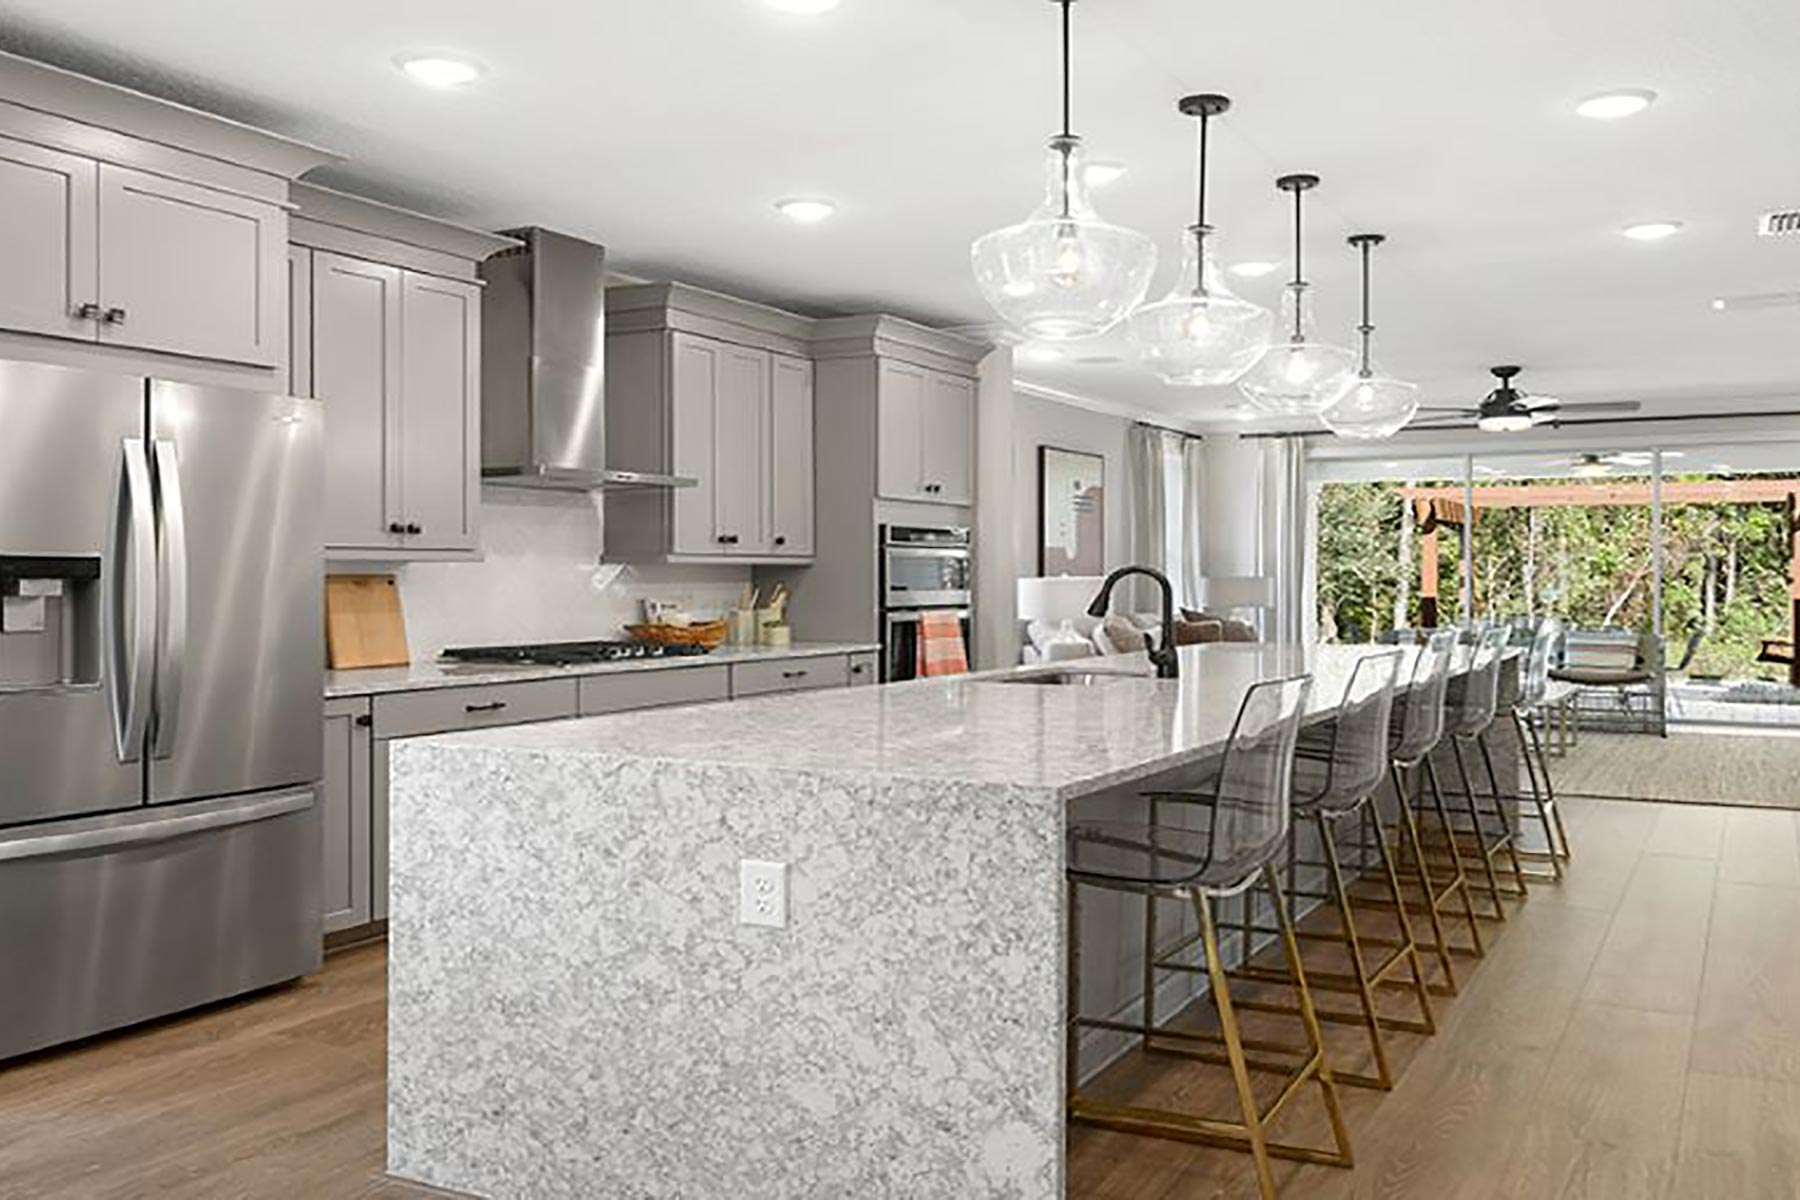 Bridge Plan Kitchen at RiverTown - WaterSong in St. Johns Florida by Mattamy Homes